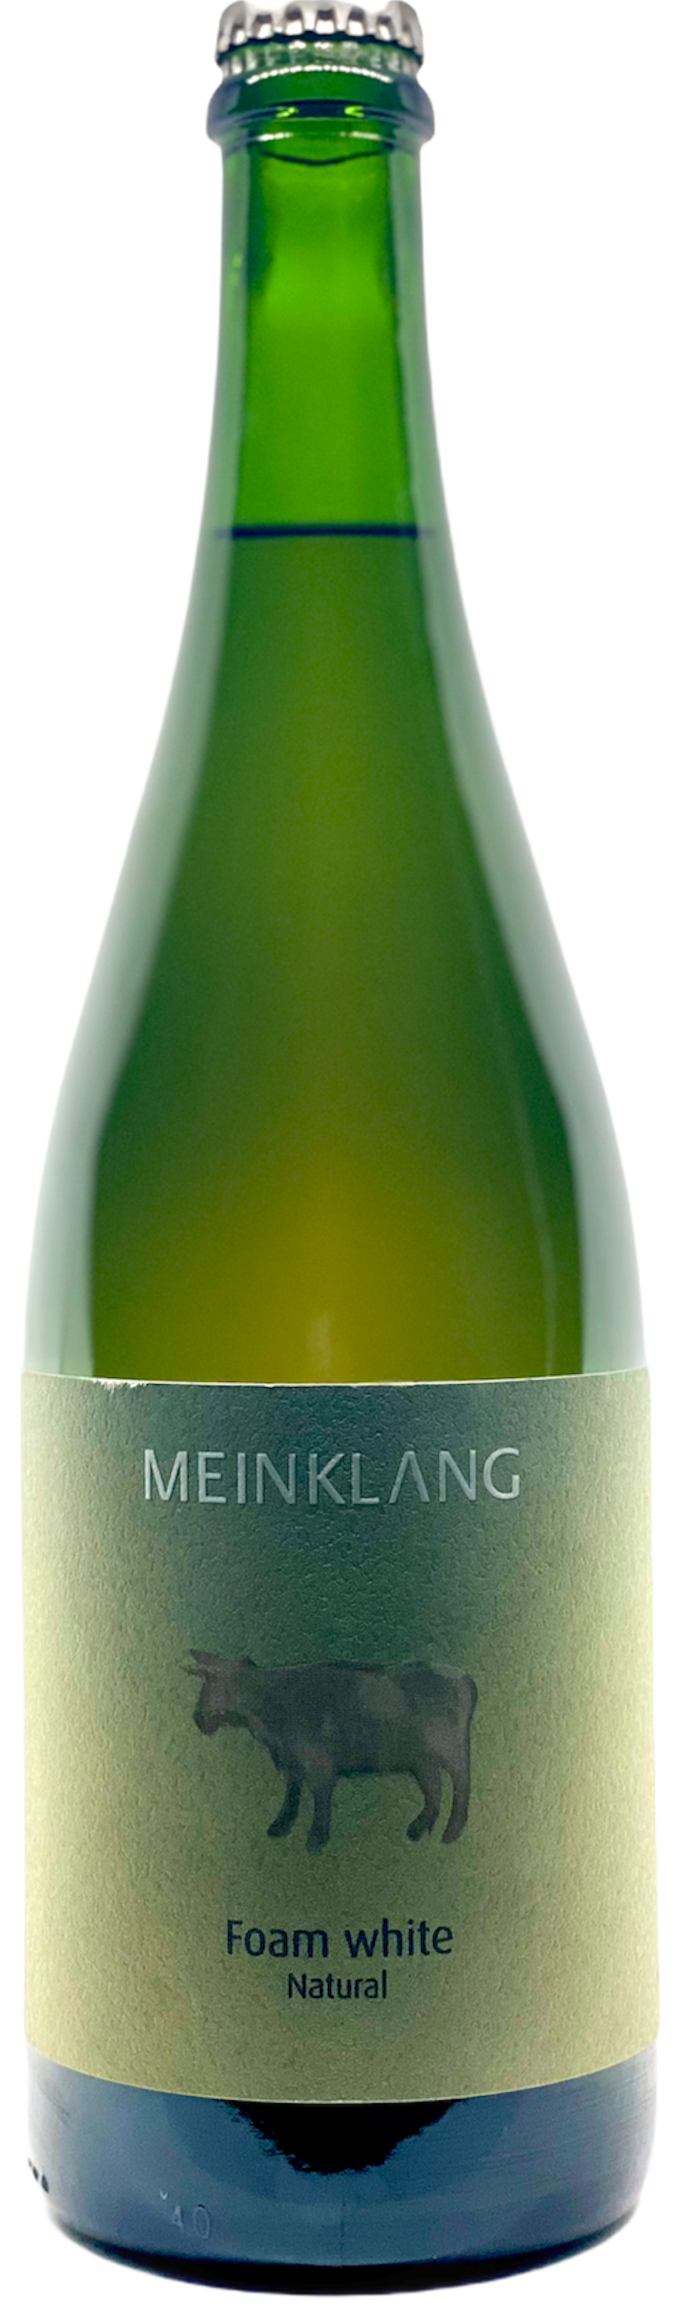 Meinklang : 'Foam' White : (Sparkling) Pinot Gris | 2019